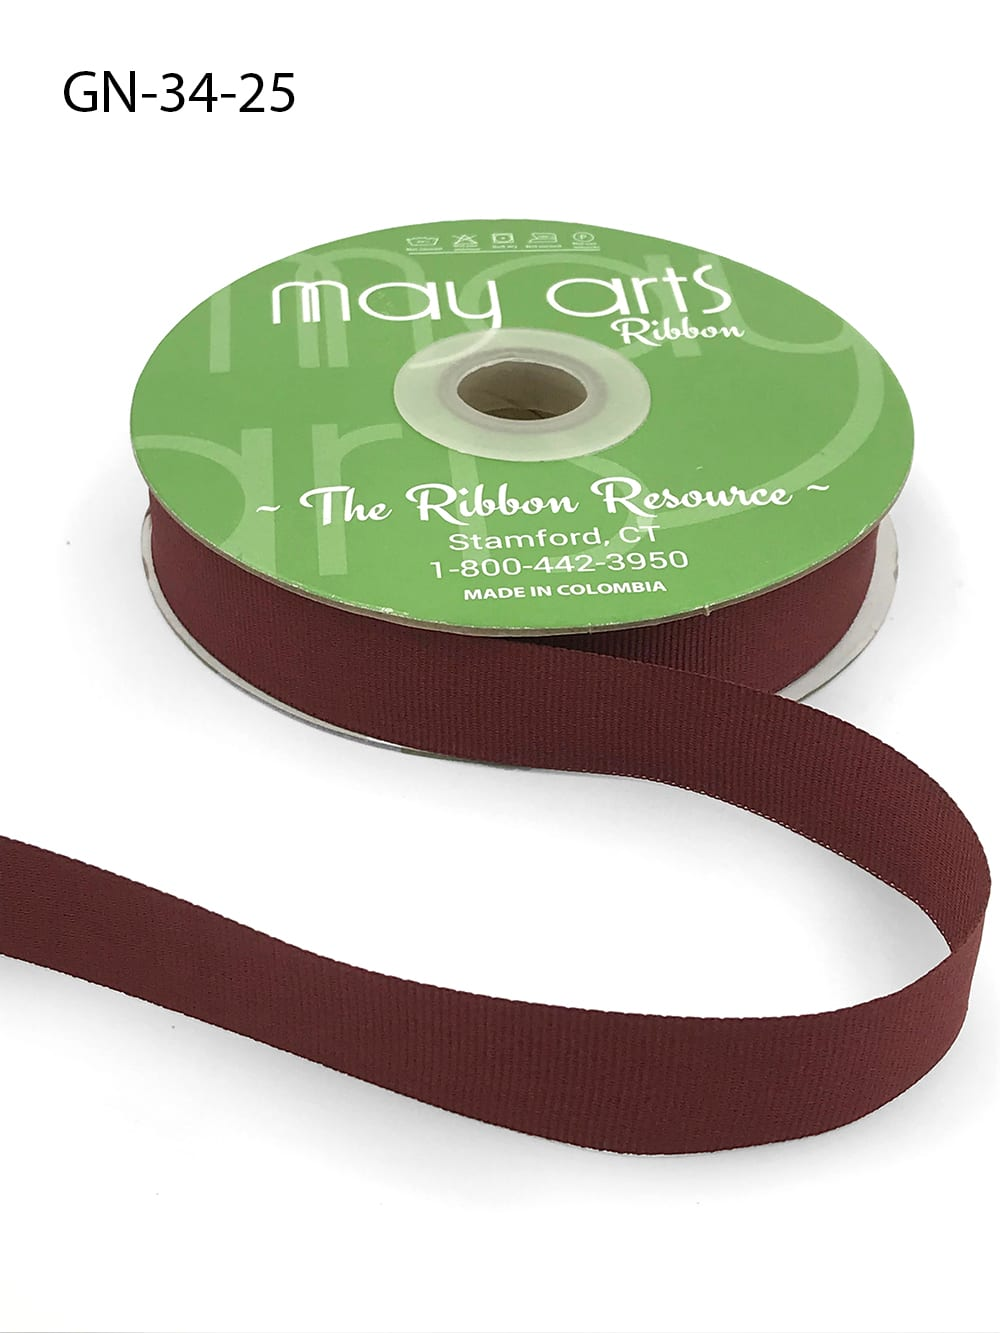 ~3/4 Inch Light-Weight Flat Grosgrain Ribbon with Woven Edge - GN-34-25 Burgundy